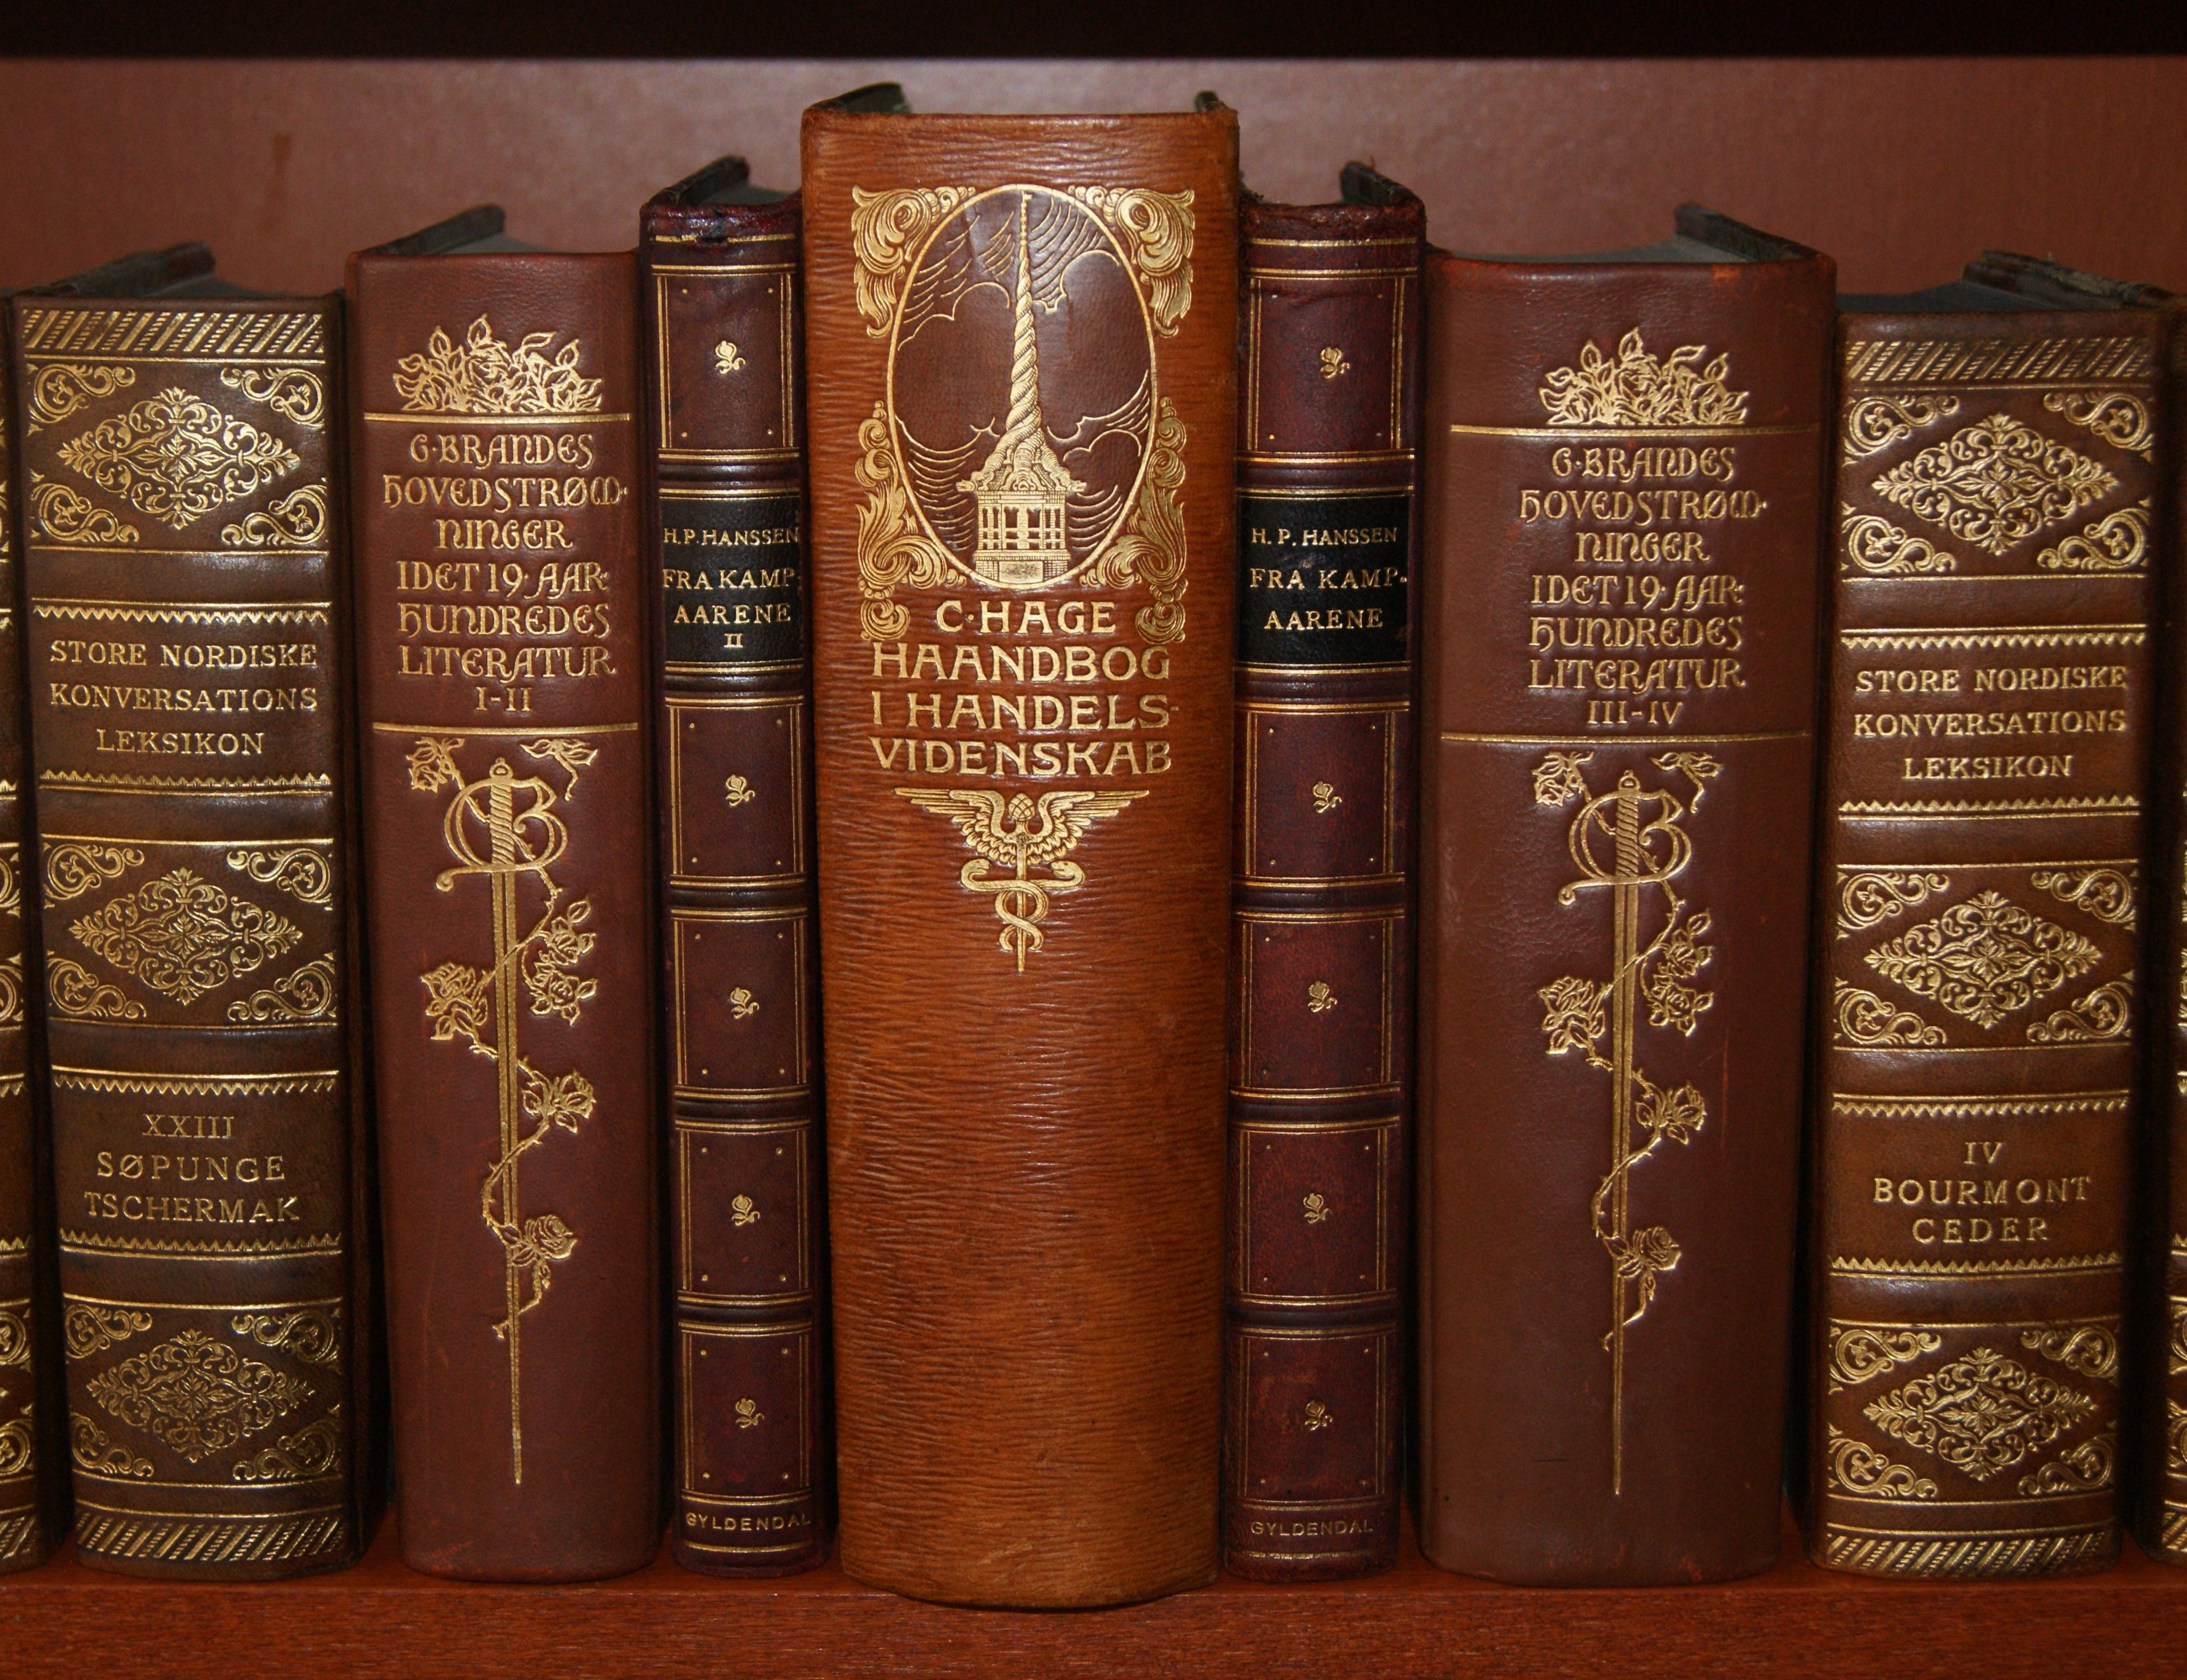 Richly Gilded Leather Spines On Old Books From Early 1900 Antique Books Book Spine Leather Bound Books